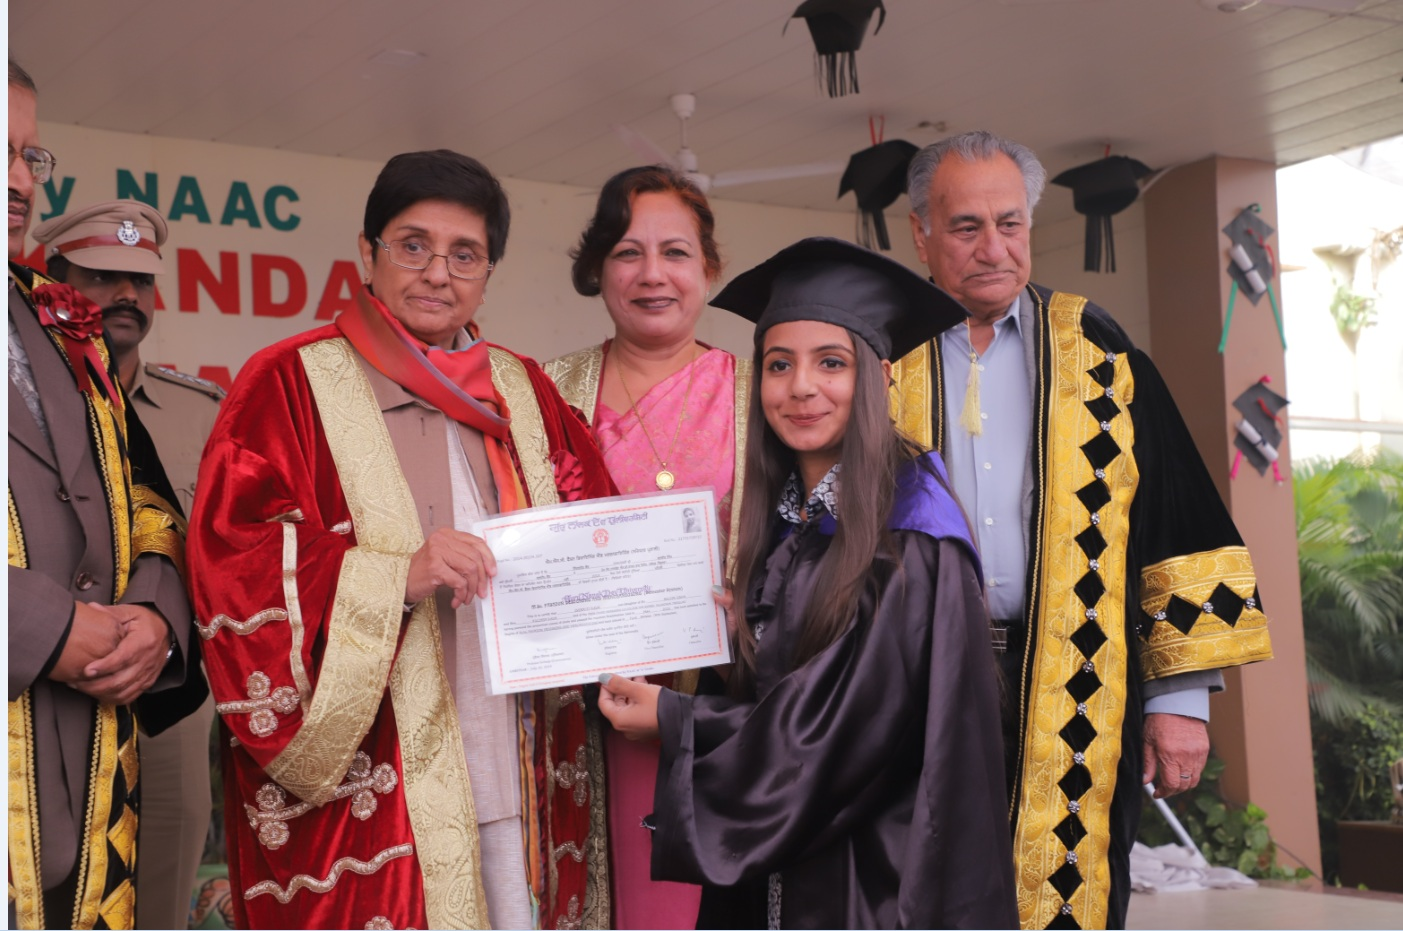 Prem Chand Markanda S.D. College for Women holds 45th Convocation